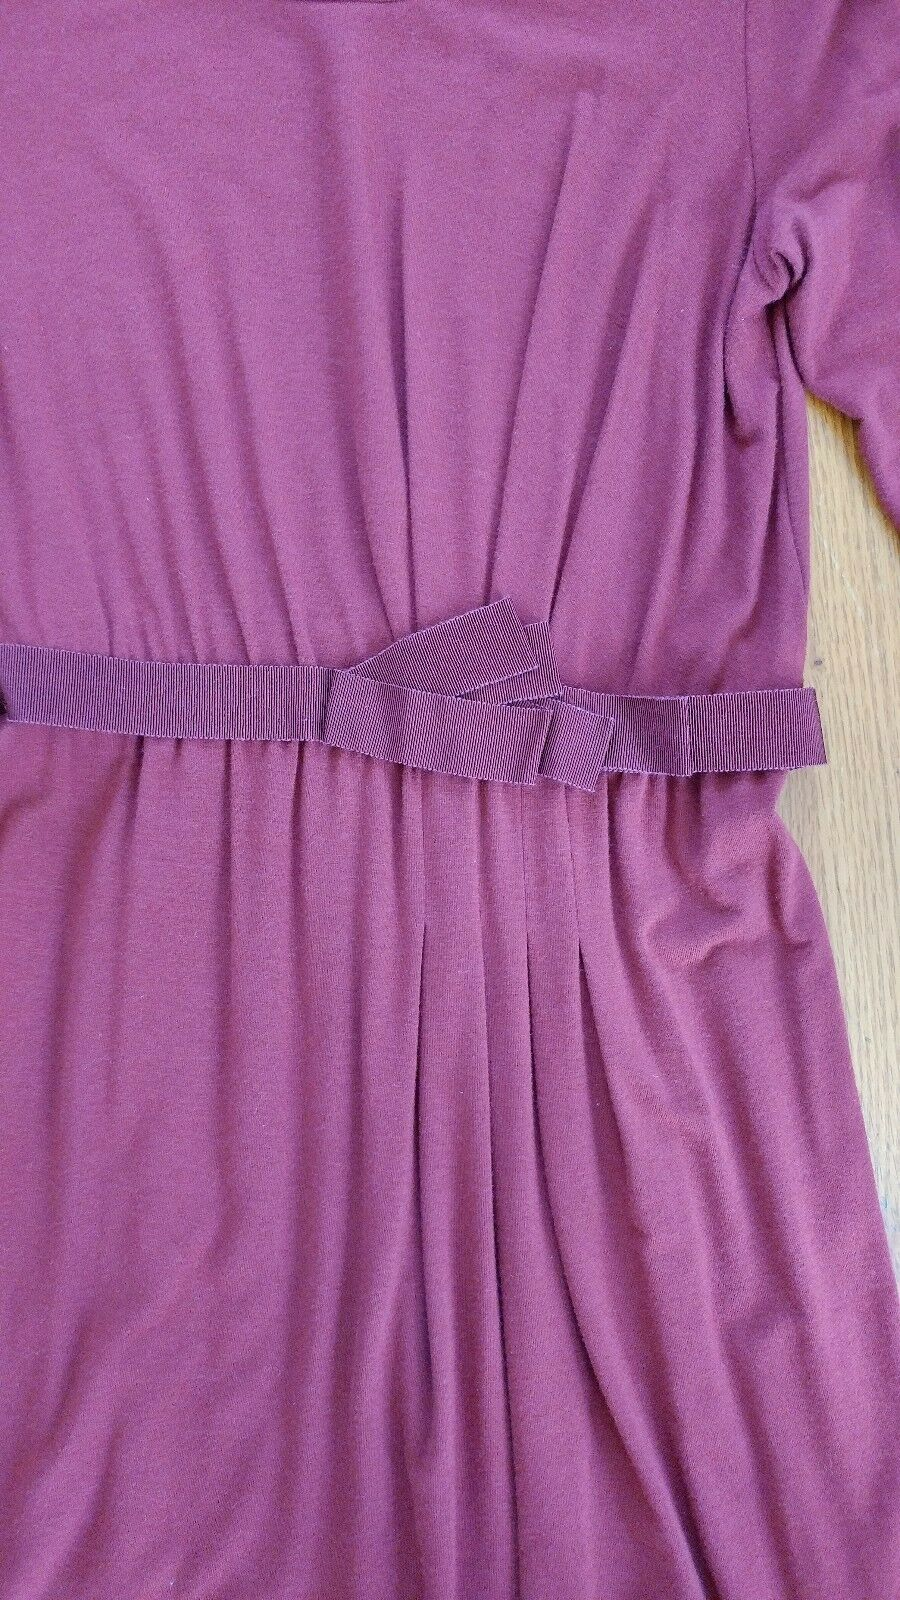 Max Mara Dress M 4 6 6 6 Jersey Bordeaux Purple Red a58dd8